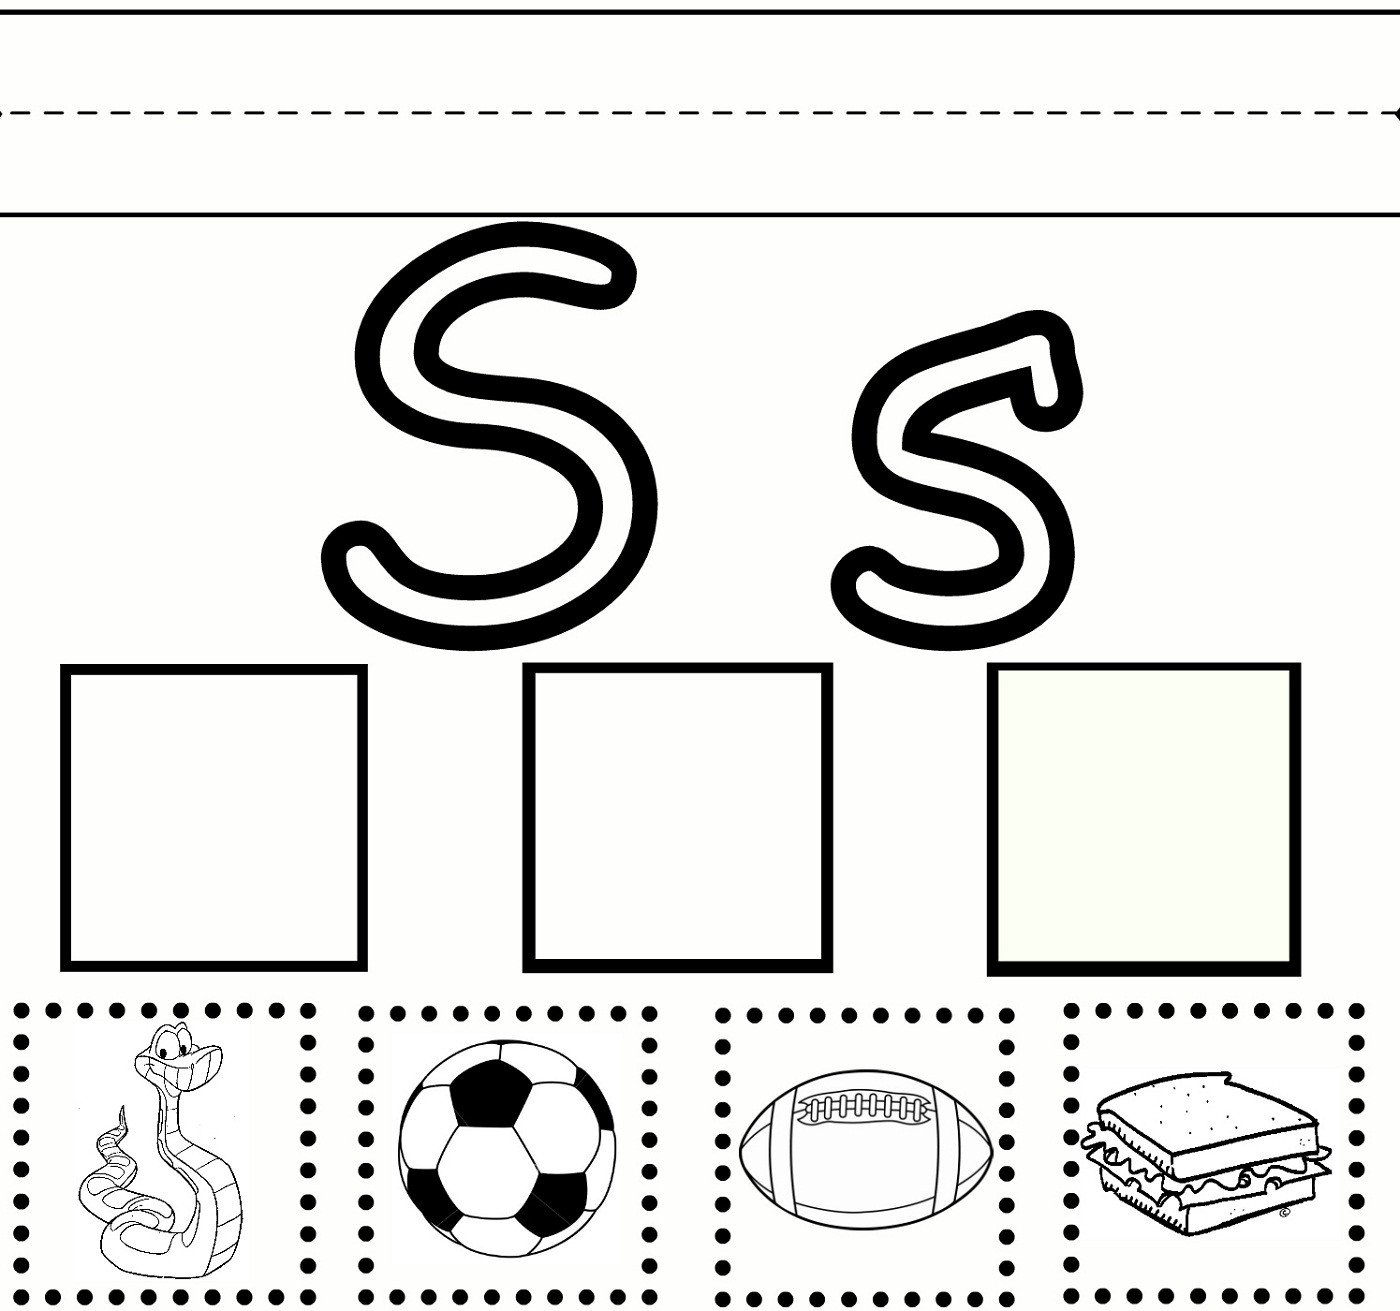 S sound Worksheets Letter S Worksheets Printable